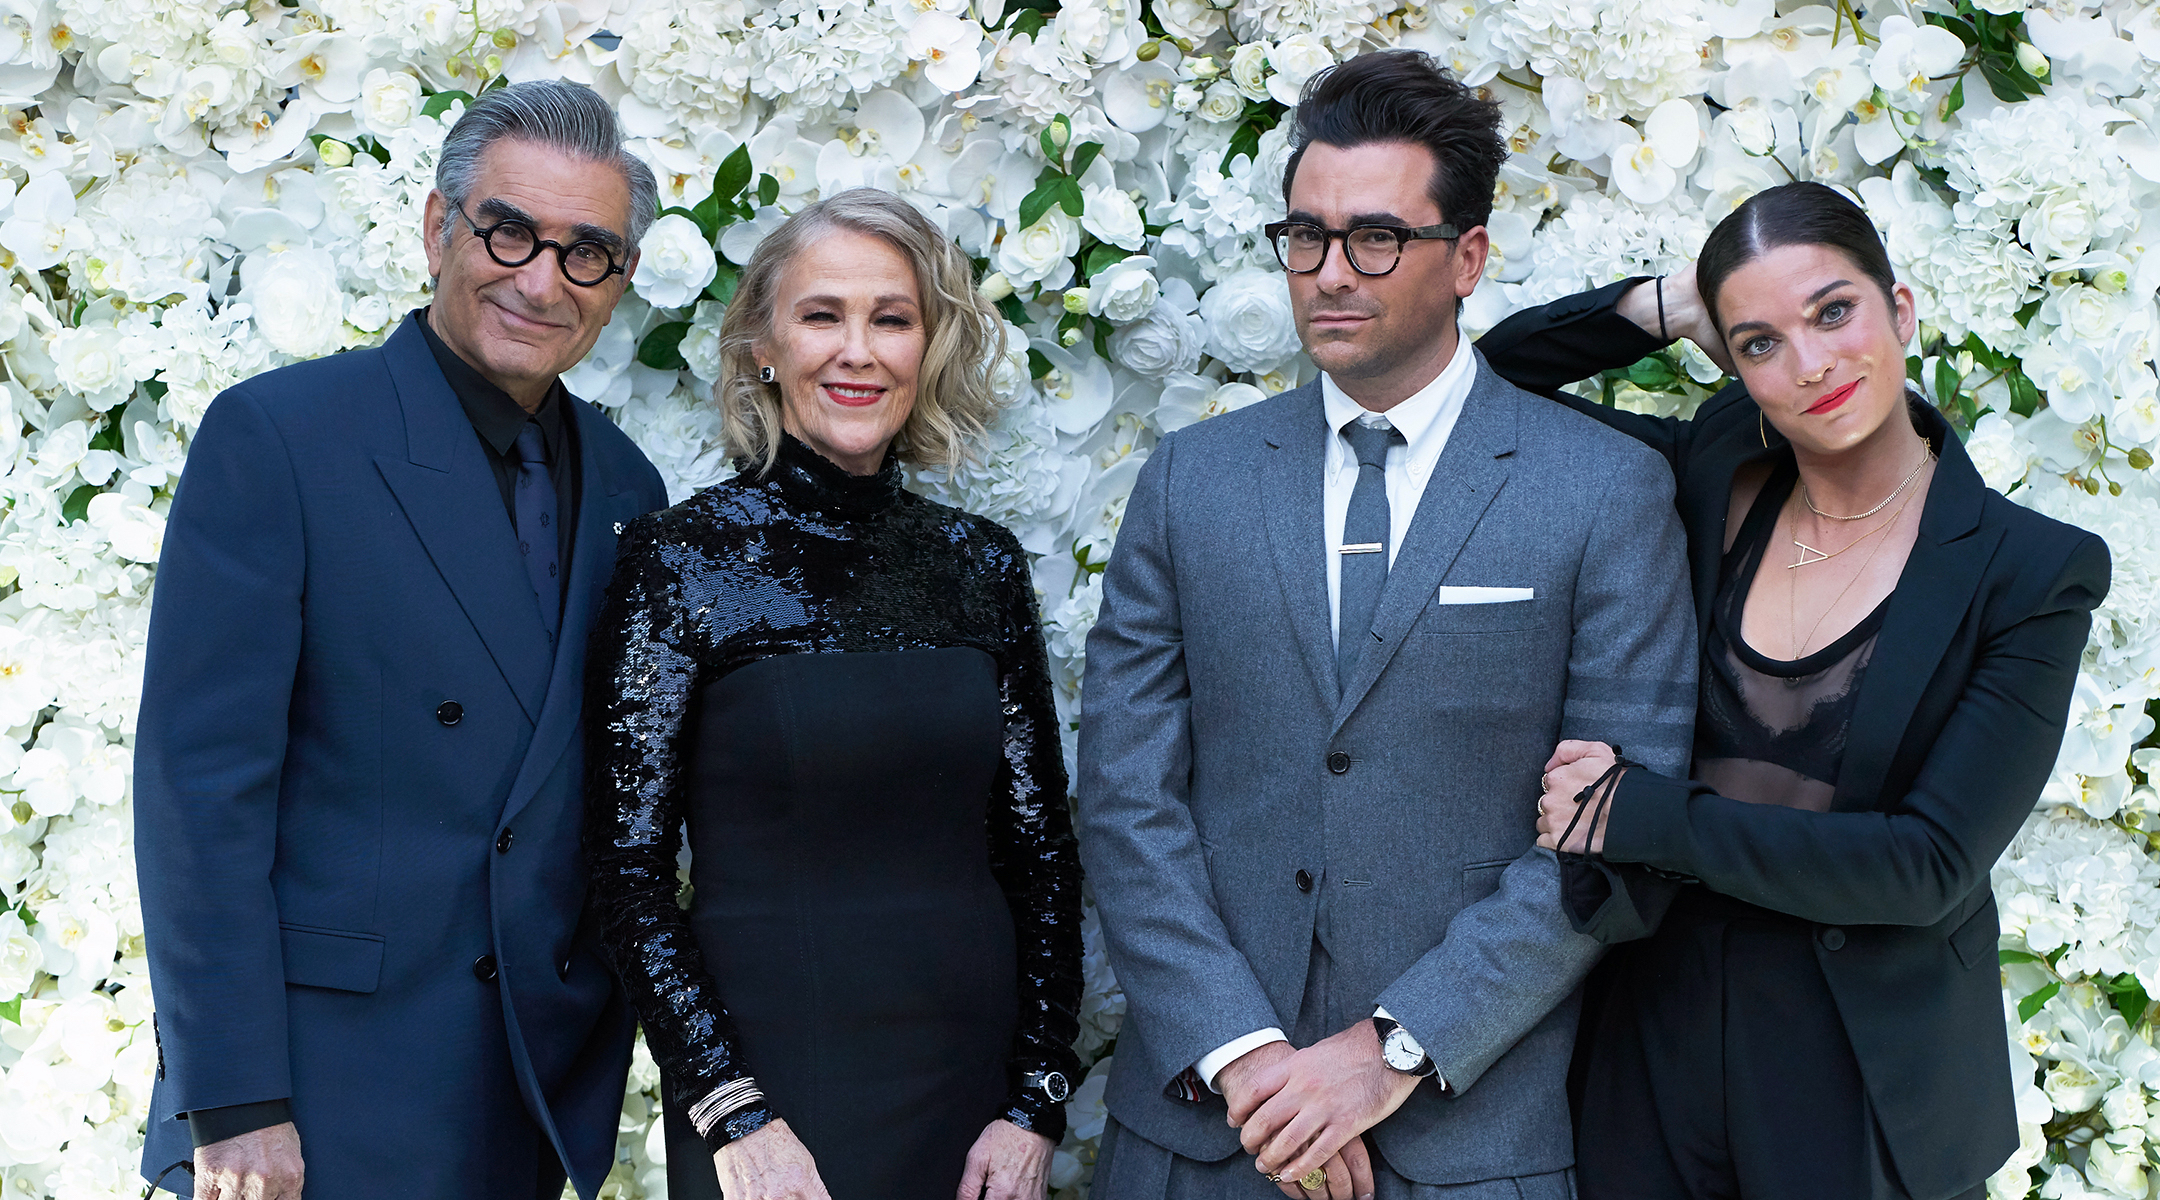 """The """"Schitt's Creek"""" cast at a pre-Emmys party, Sept. 21, 2020: (from left) Eugene Levy, Catherine O'Hara, Dan Levy and Anne Murphy."""